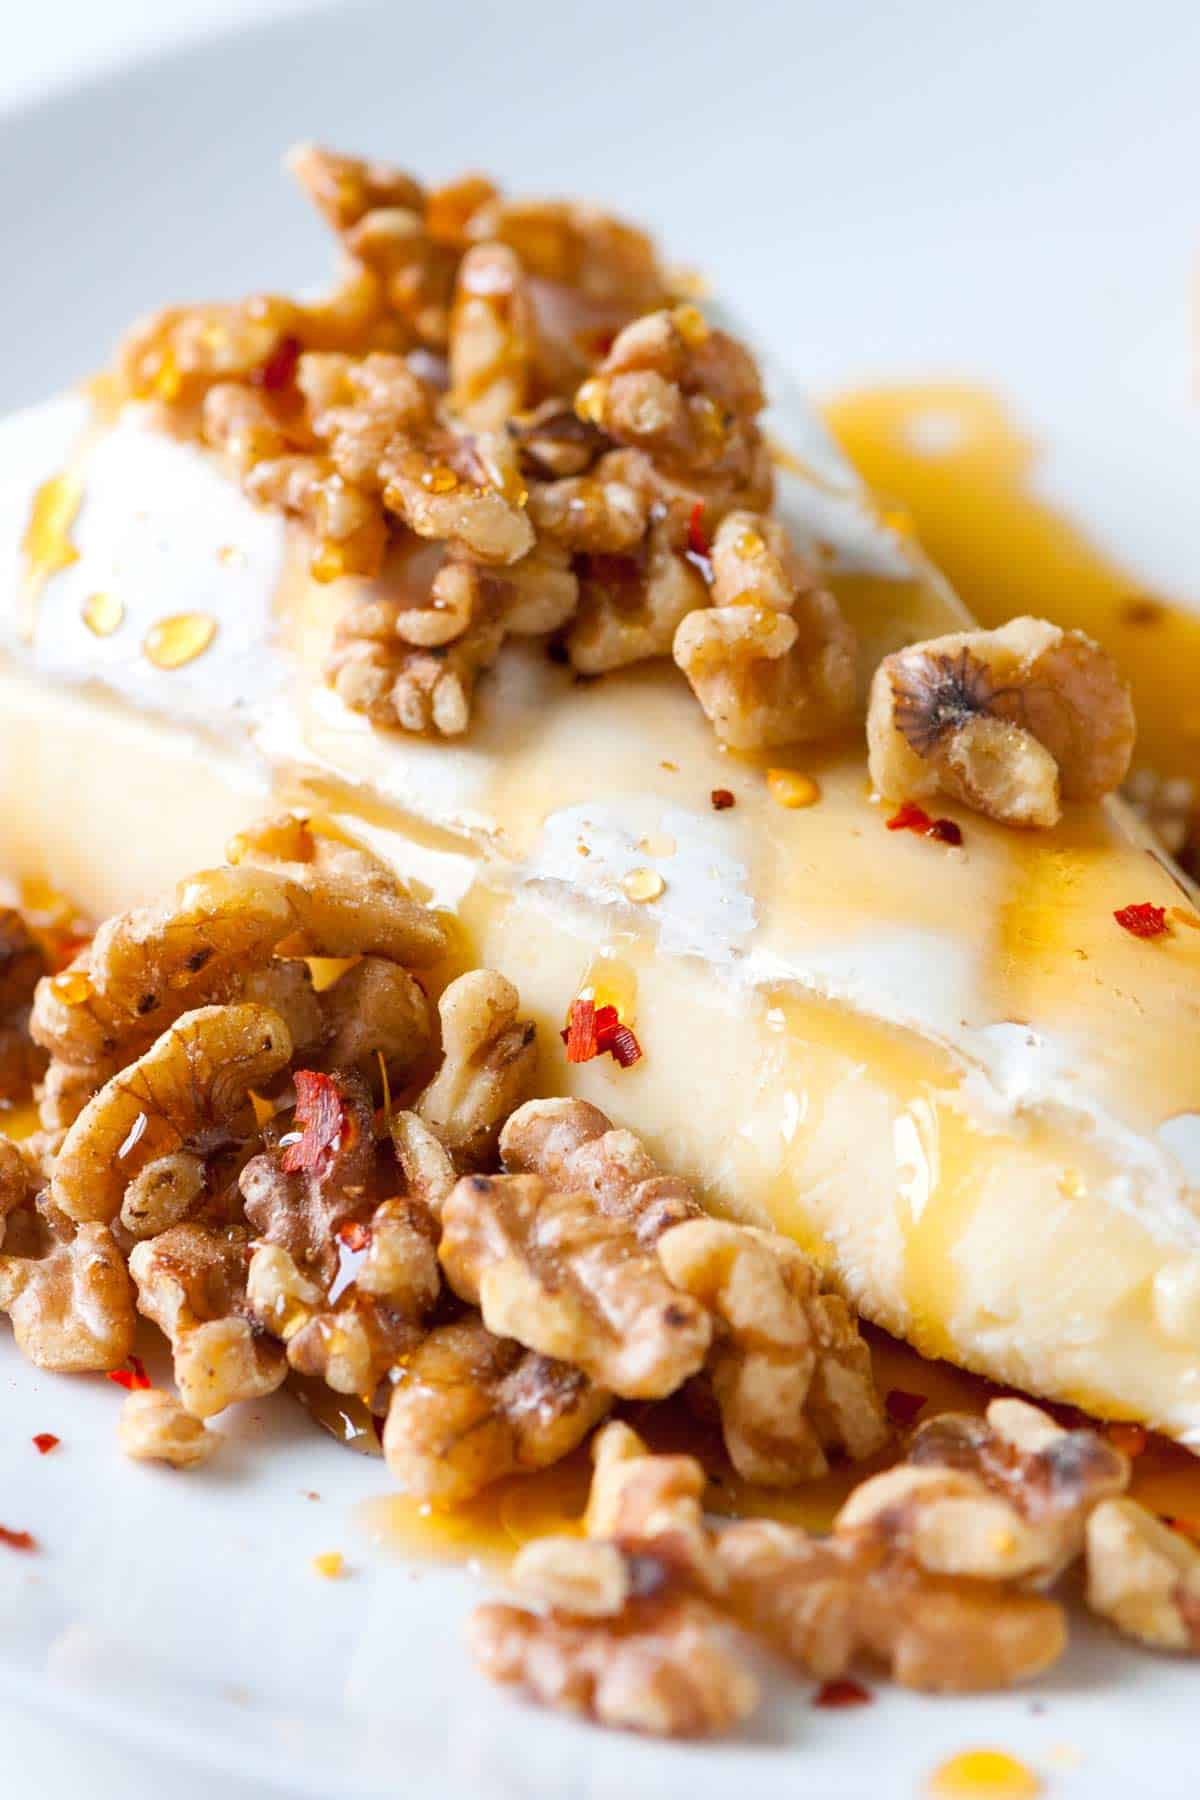 How to serve brie with spiced and warm honey and toasted walnuts